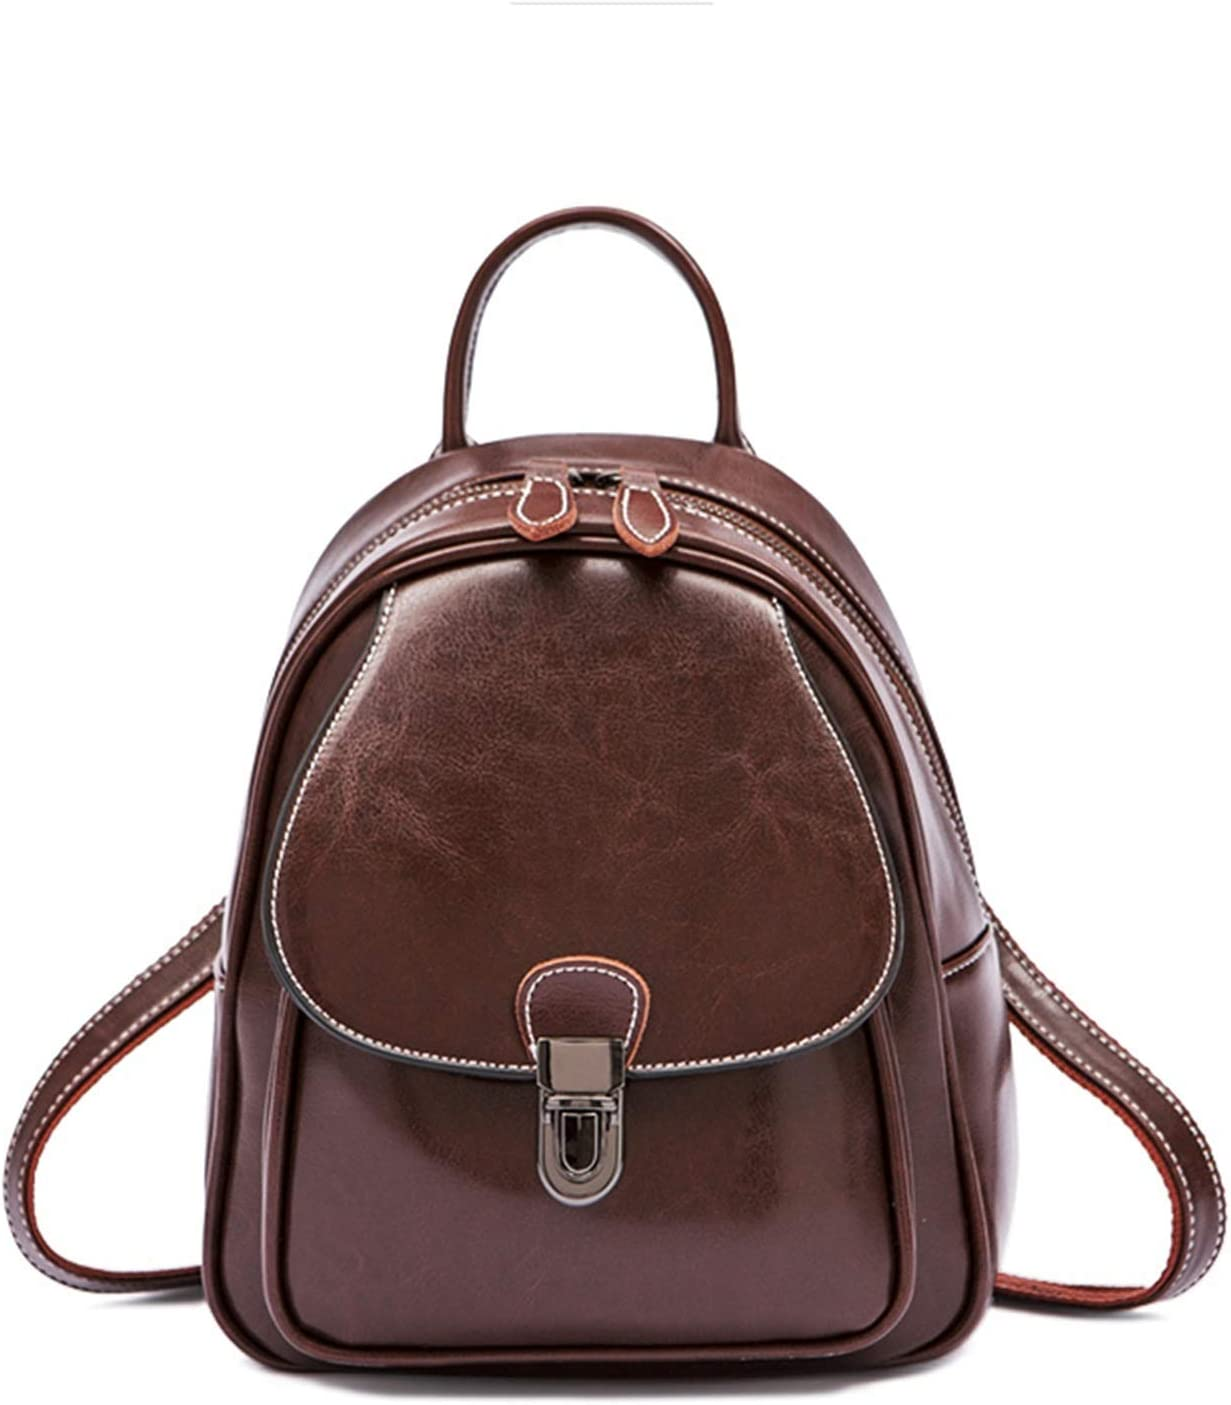 Backpack New Max 48% OFF Shipping Free Purse for Women Fashion Humble Handbags All-M